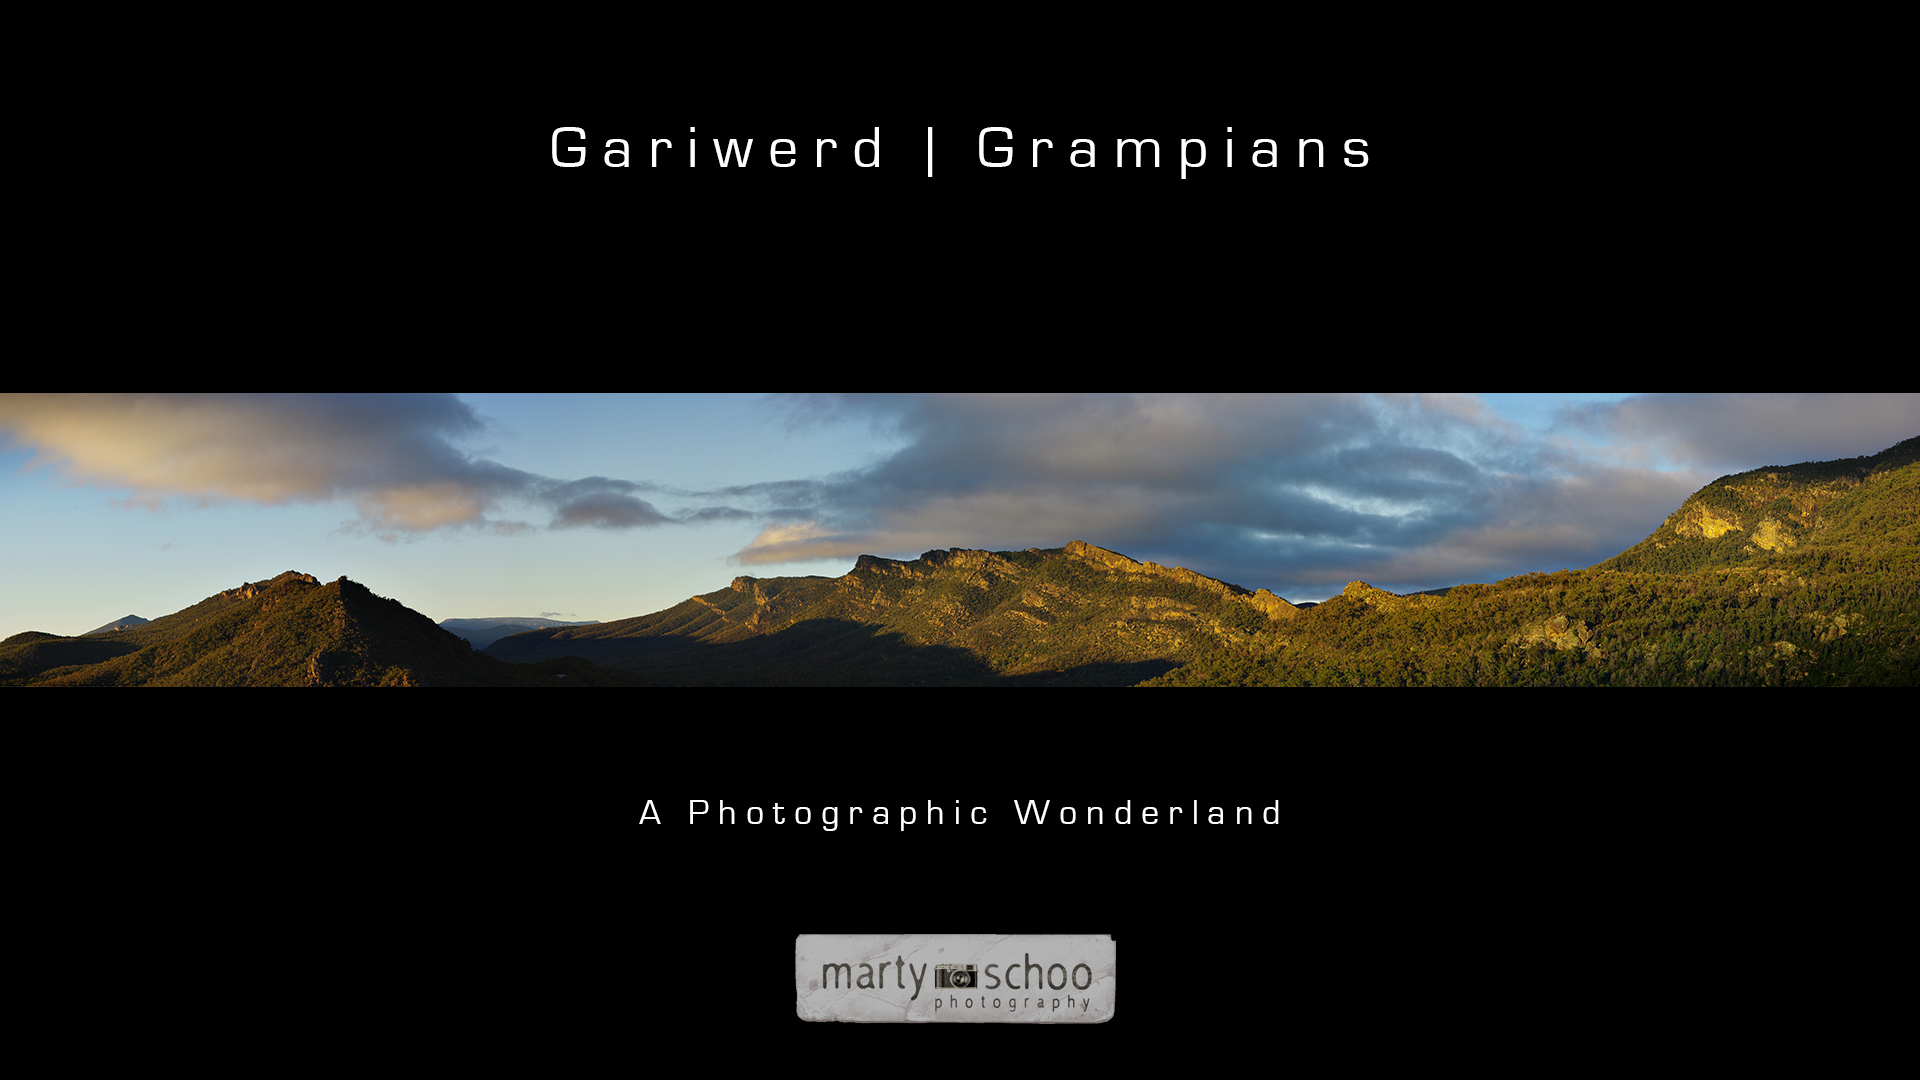 The Grampians - A photographic Wonderland - APSCON 2014